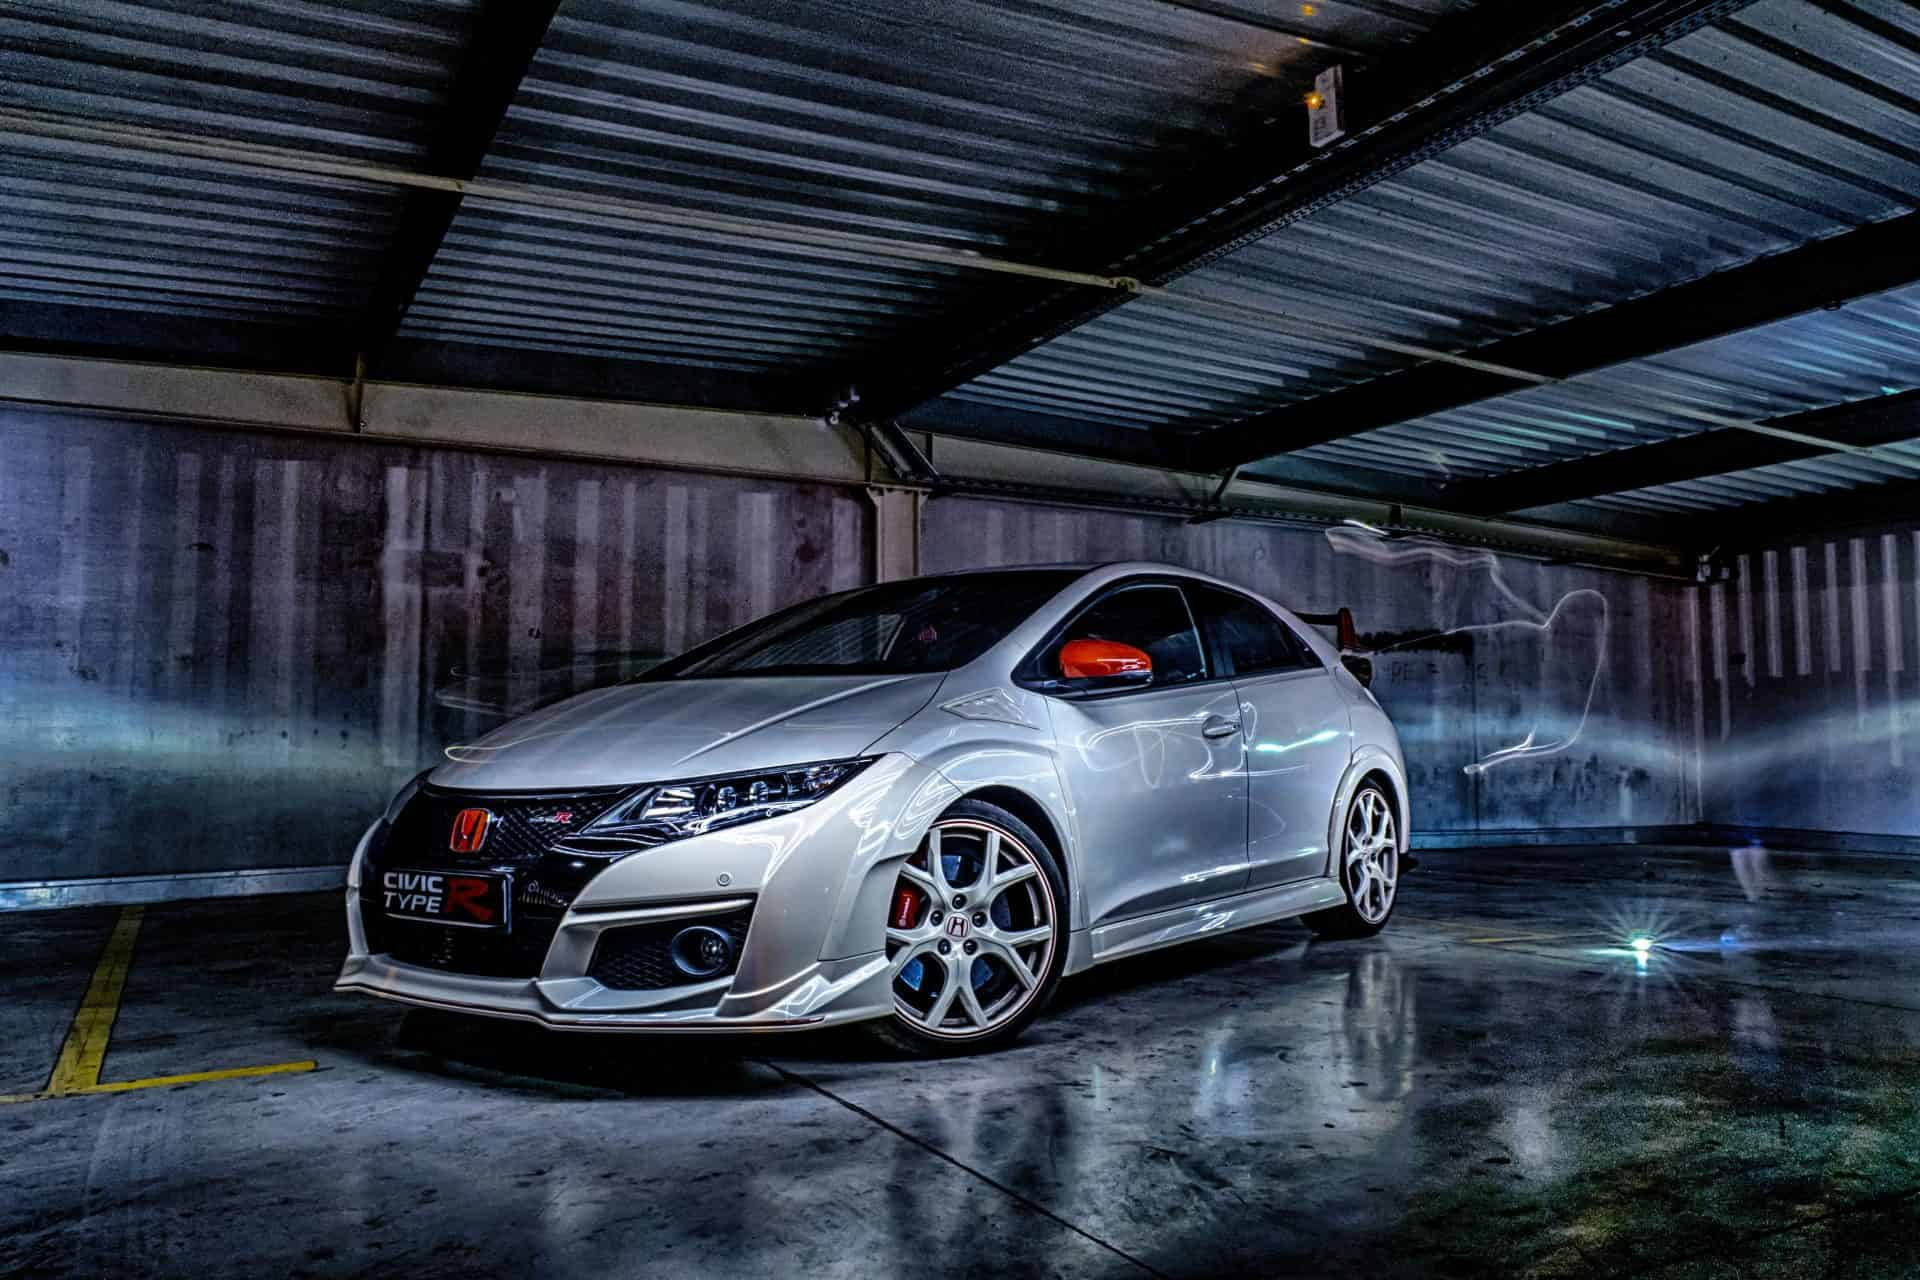 Honda Civic FK2